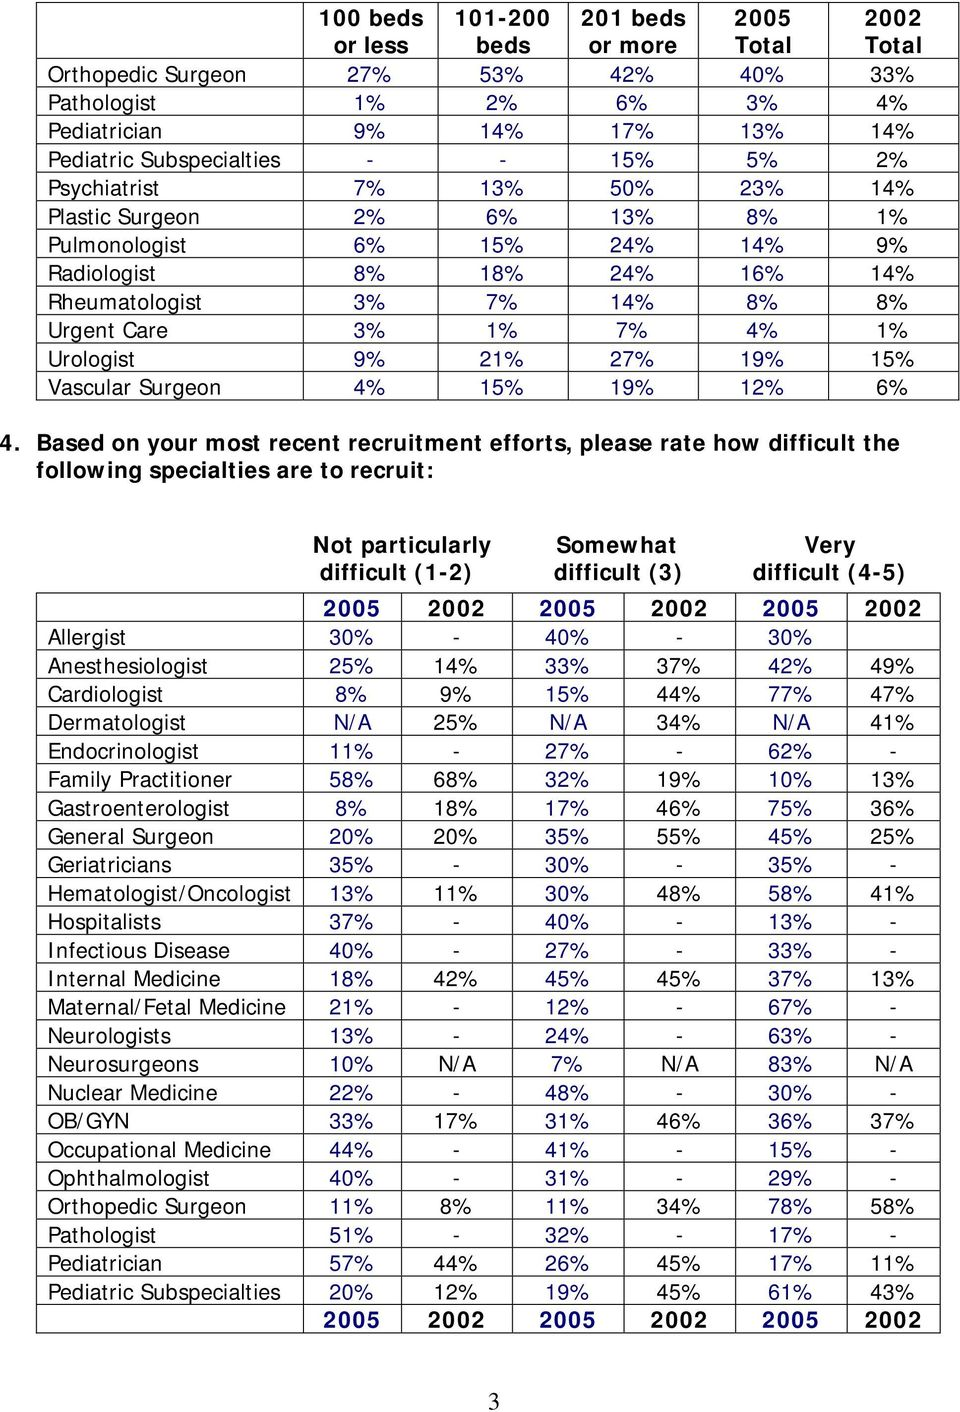 Urologist 9% 21% 27% 19% 15% Vascular Surgeon 4% 15% 19% 12% 6% 4.